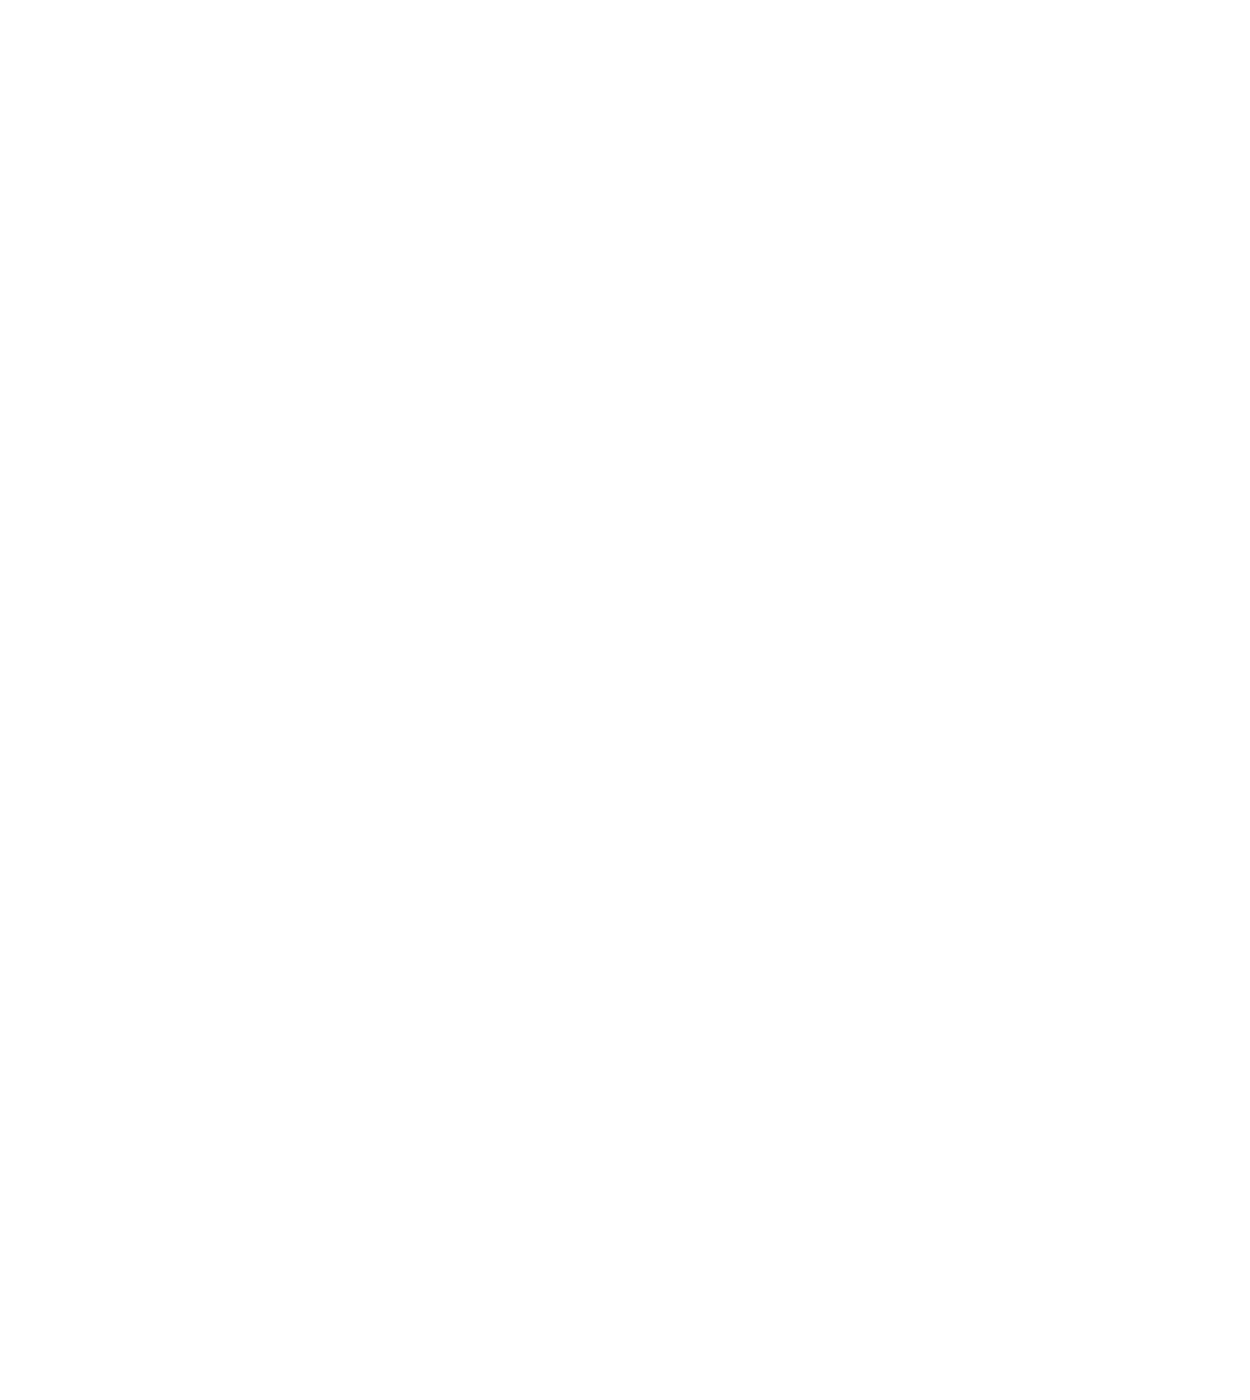 Niro Law Group